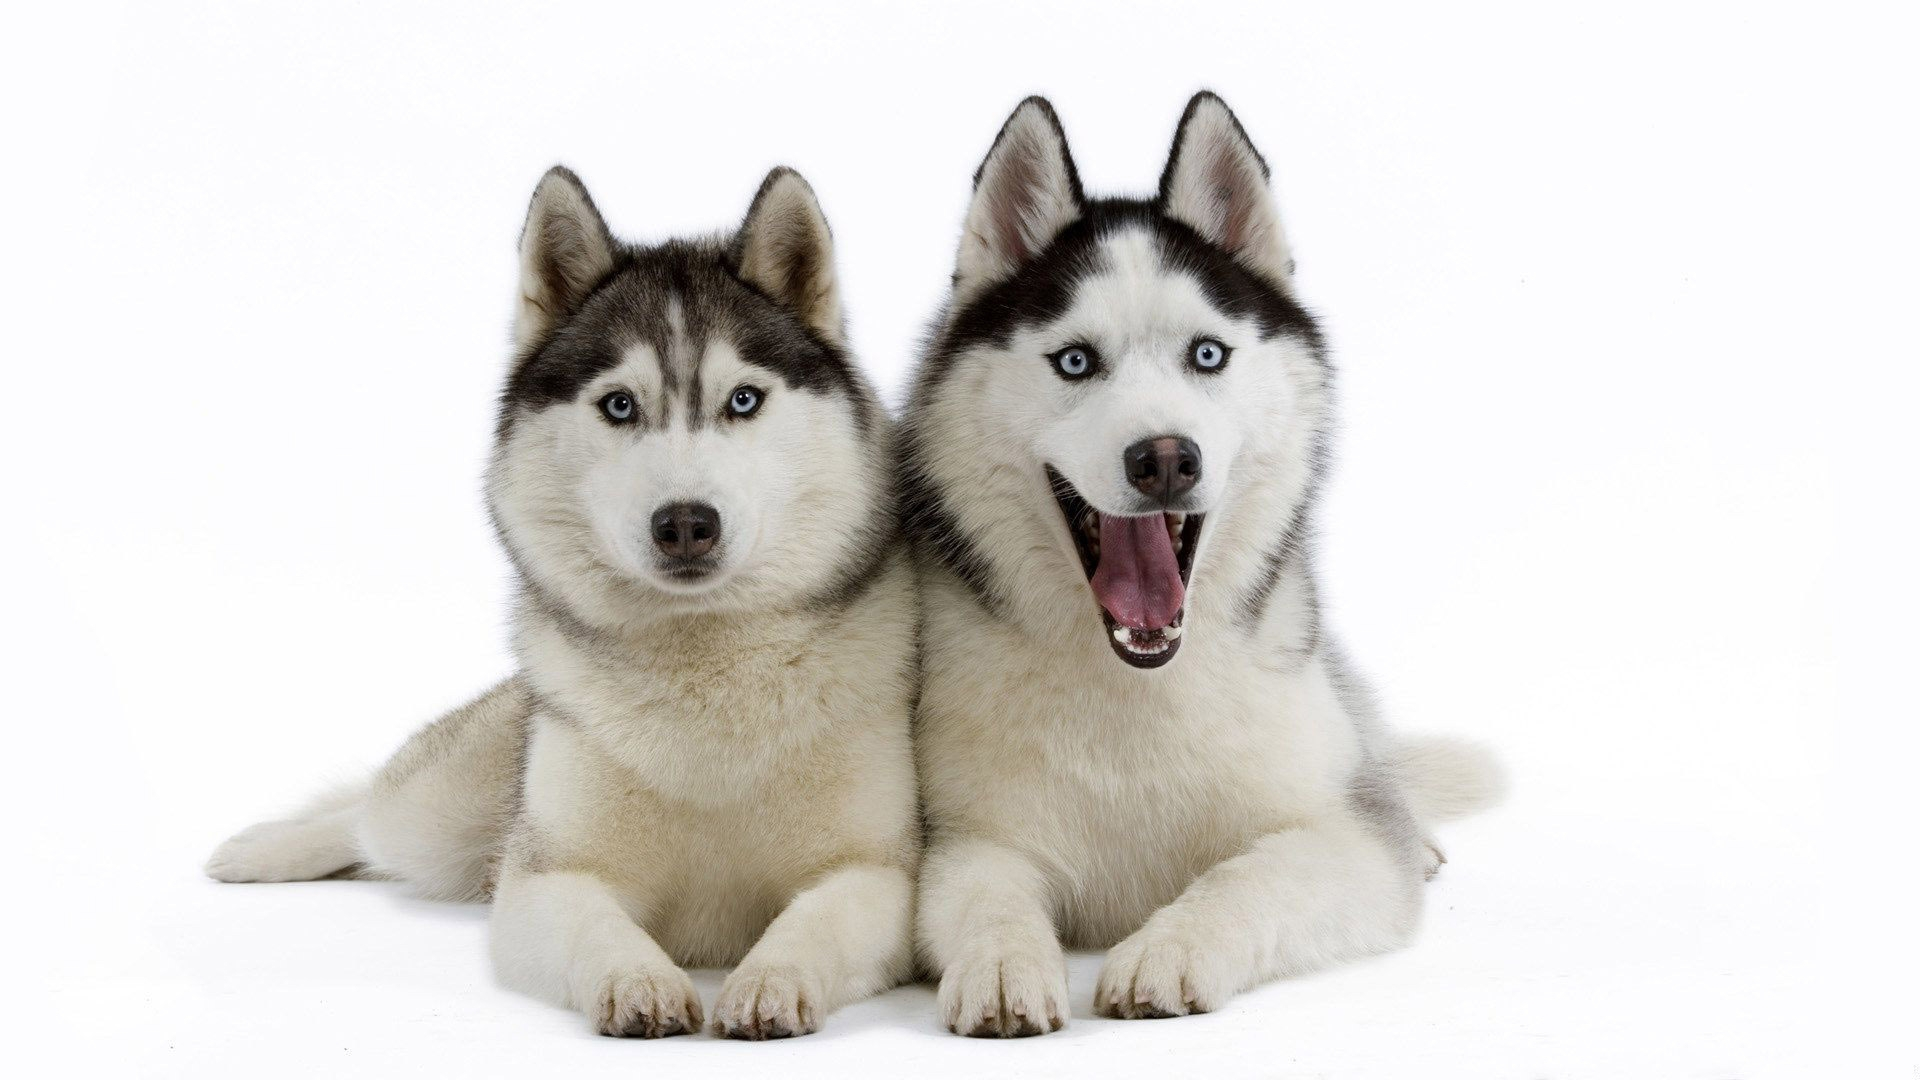 Siberian Huskies   Doge Wallpaper 1920x1080 59509 1920x1080